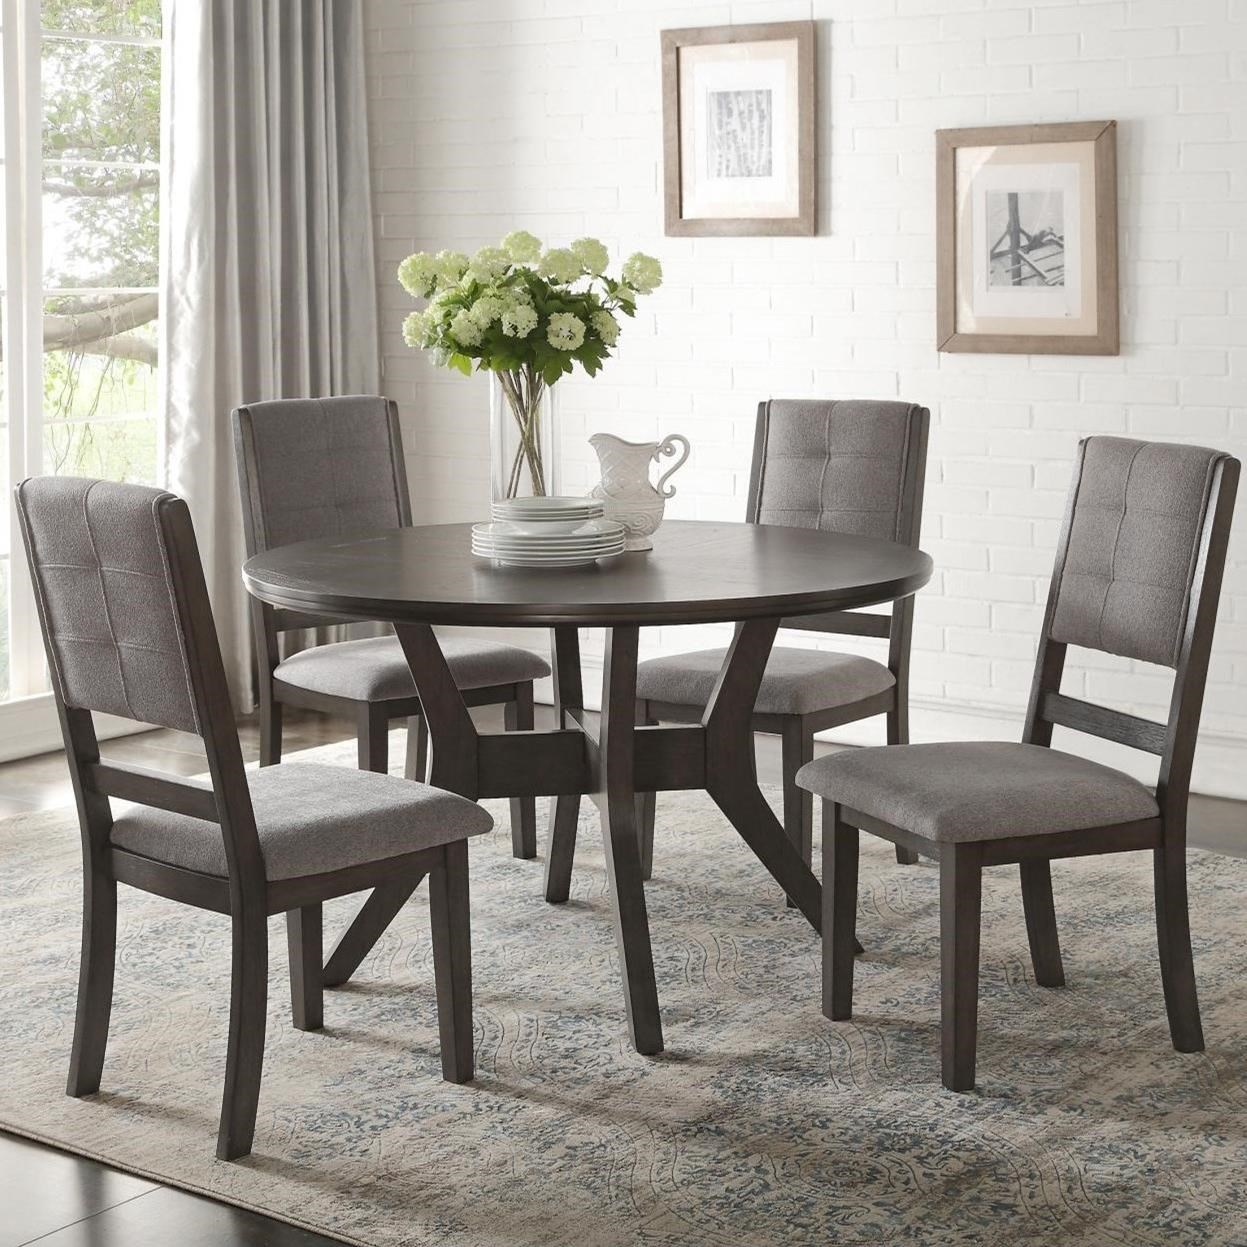 Nisky 5 Piece Chair & Table Set by Homelegance at Beck's Furniture